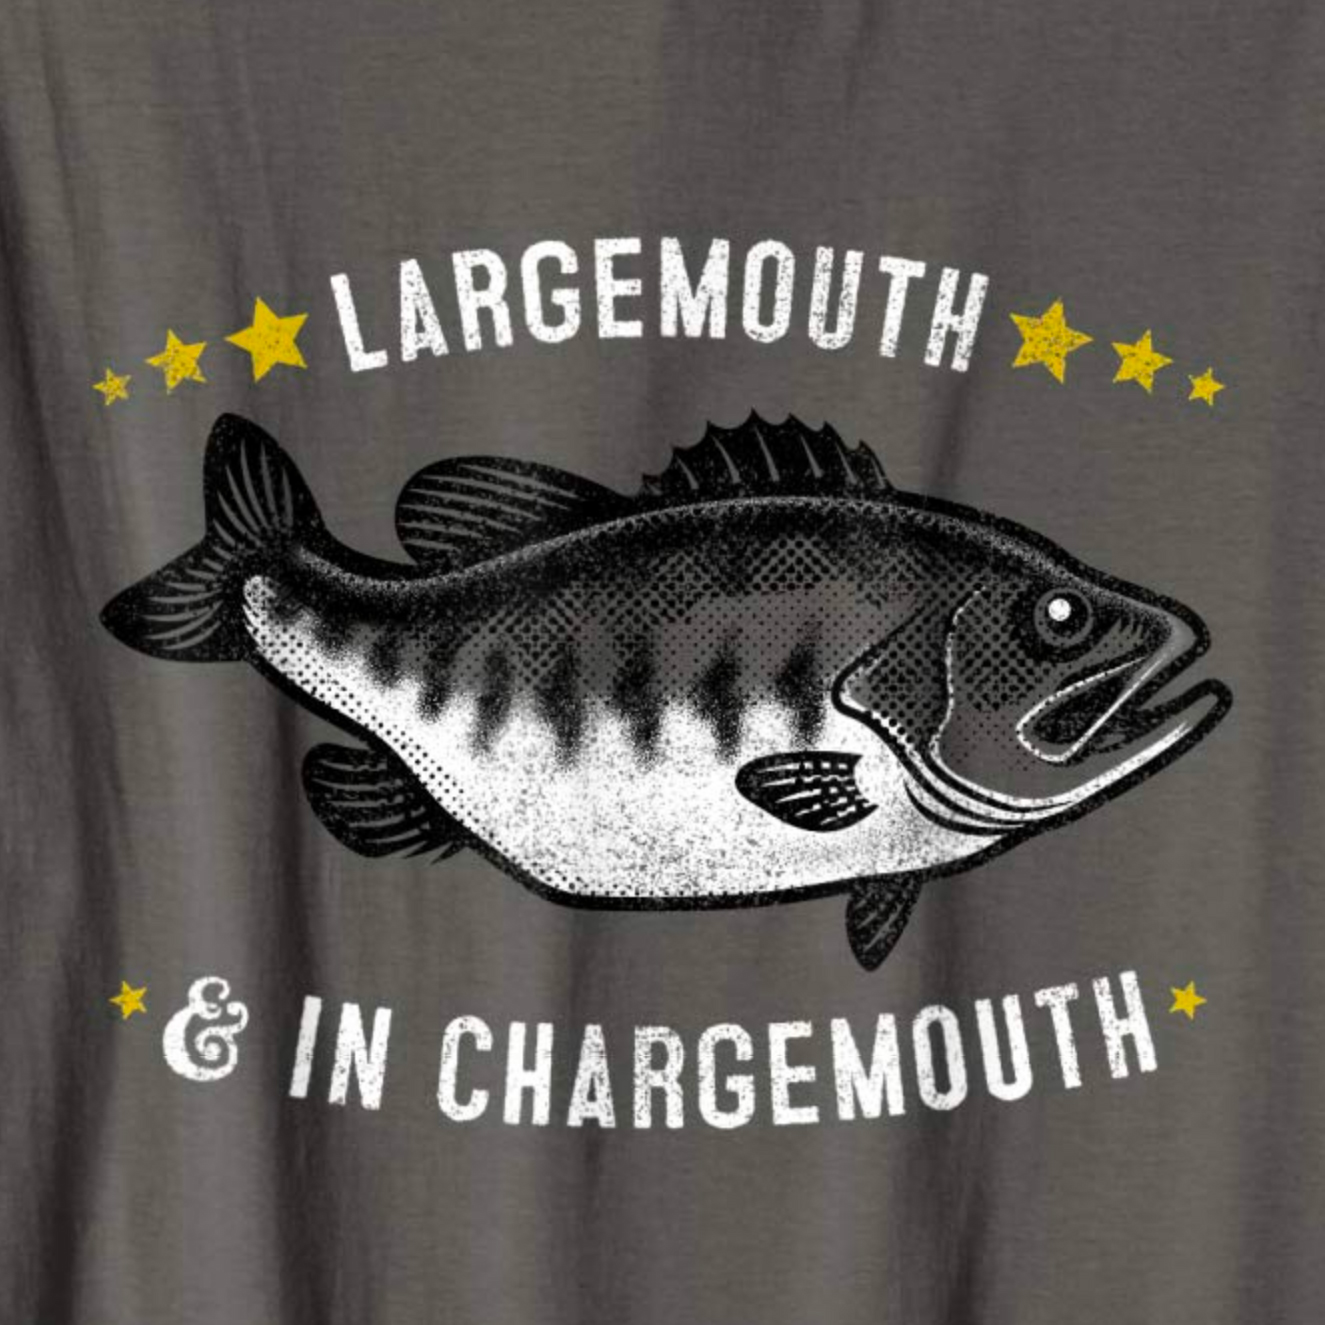 Largemouth & In Chargemouth